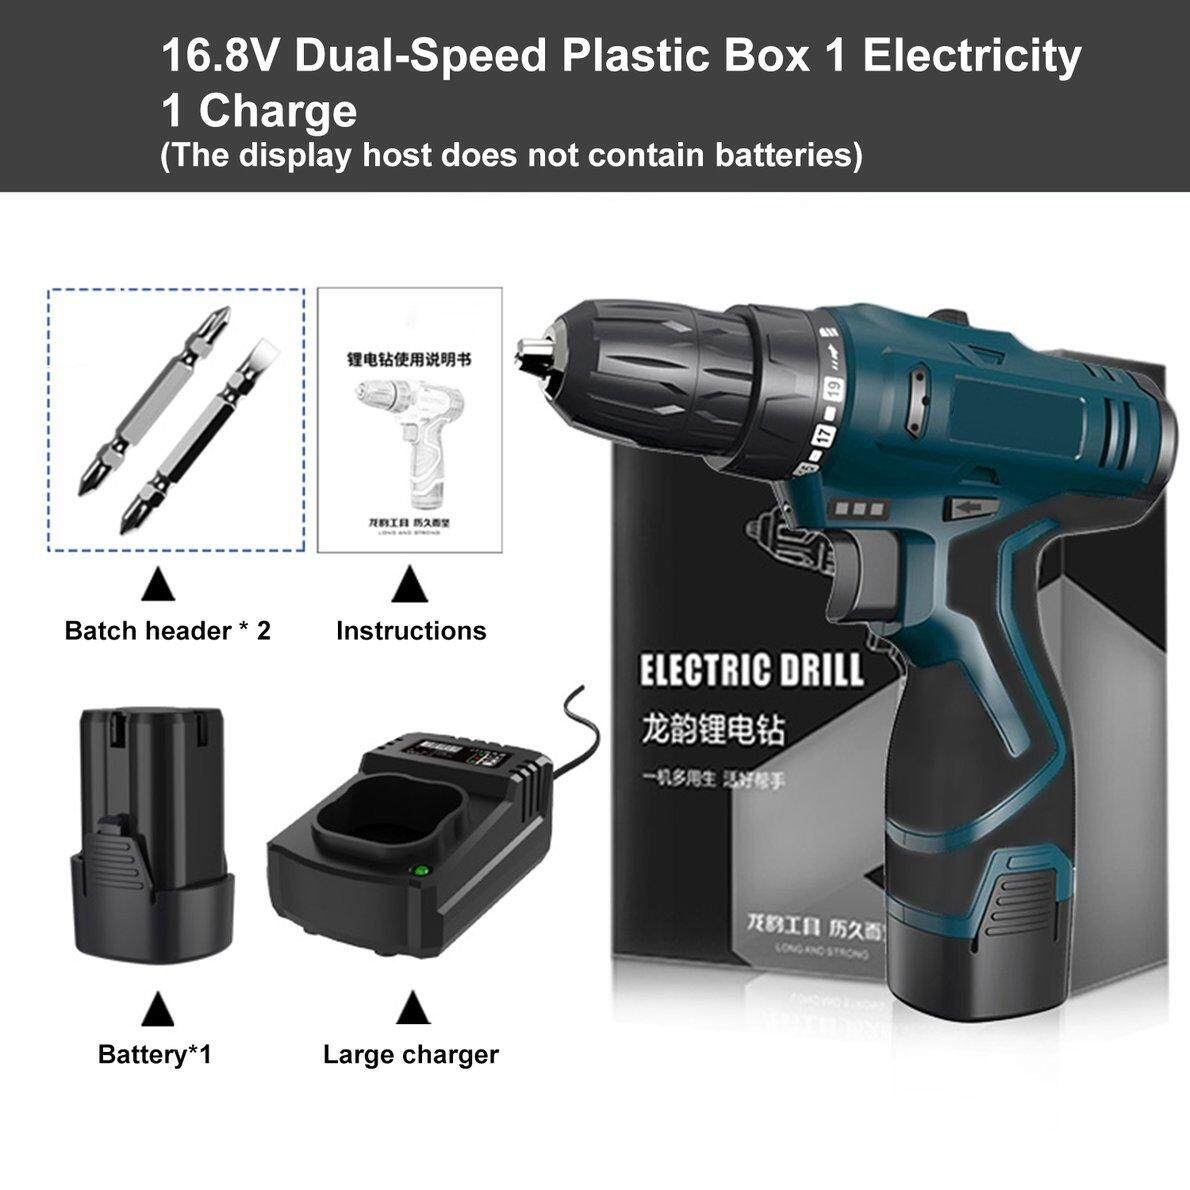 Top Sale 16.8V 2-Speed Electric Drill Electric Screwdriver Drill kit with Accessories